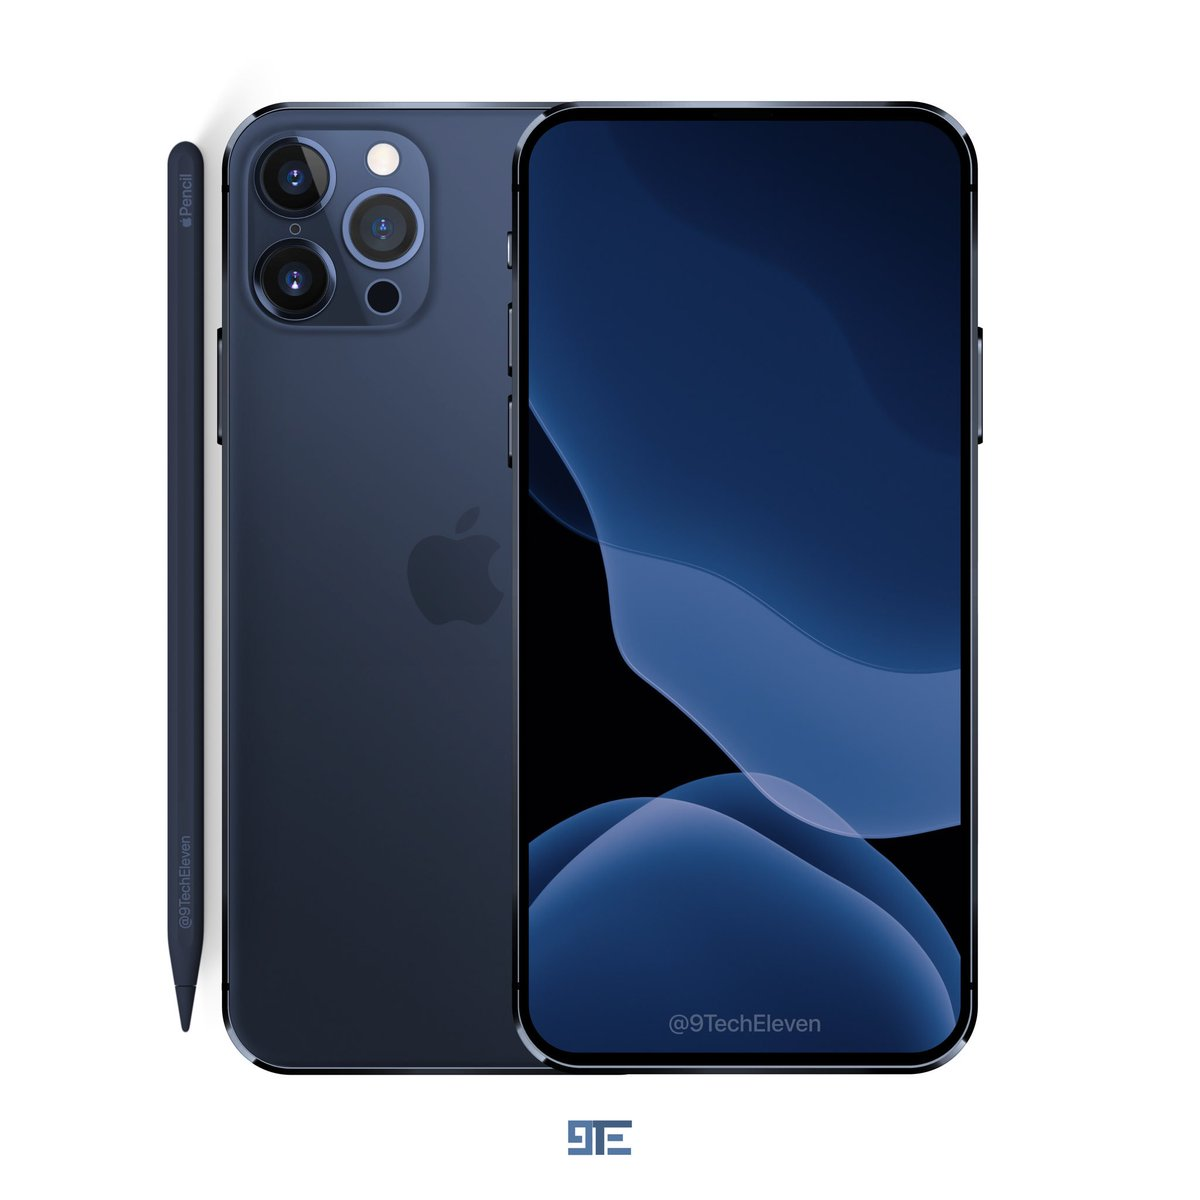 9techeleven On Twitter 2020 5 4 Iphone 12 Pro In Mist Blue Color With No Notch Had Told Wouldn T Make Another Concept Until Sep Goes By But Have Been So Tempted To Make